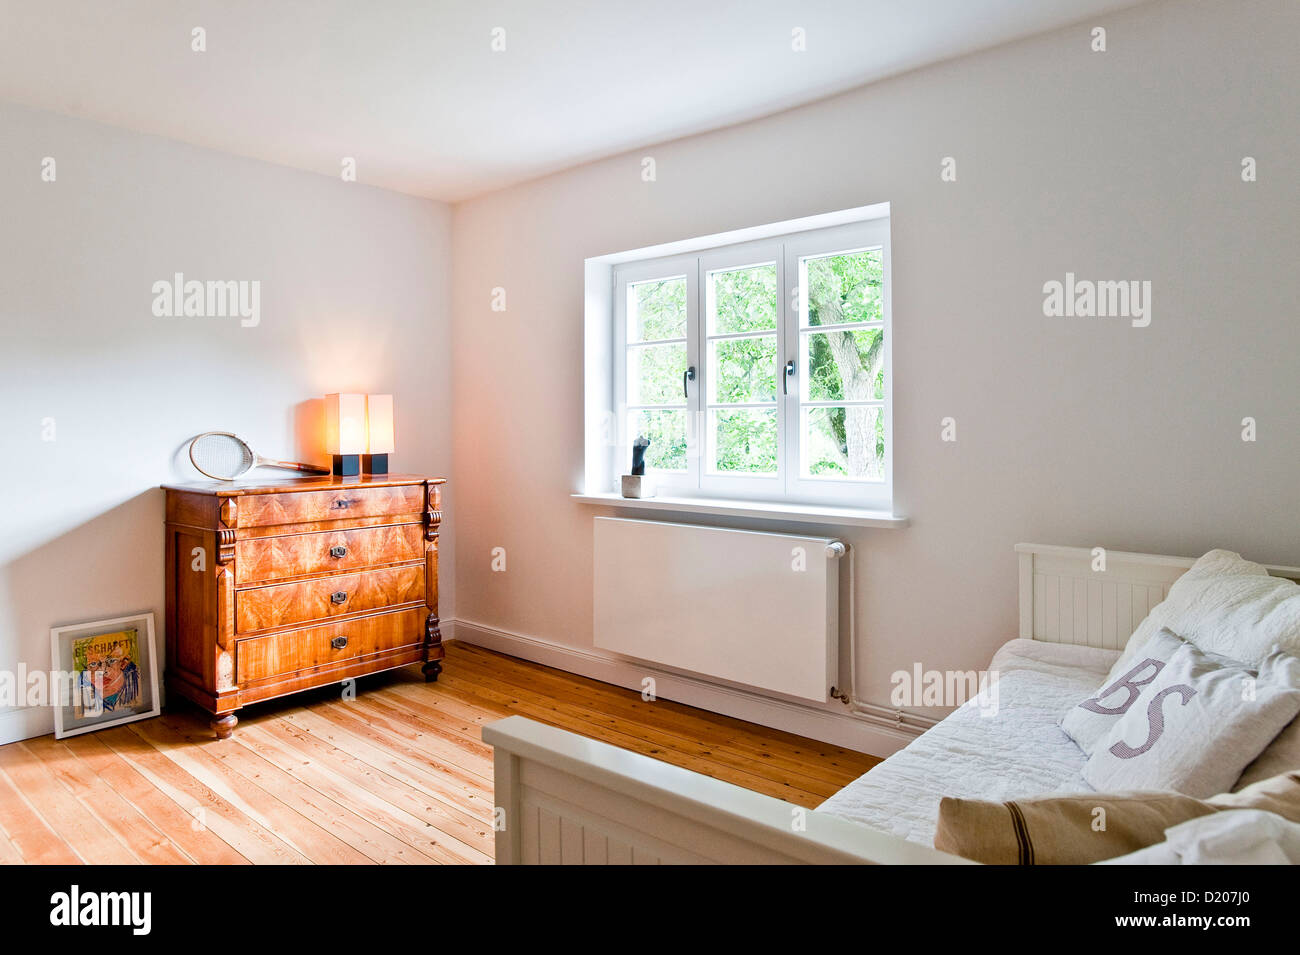 Bedroom with Bed and chest of drawers, House furnished in country style, Hamburg, Germany - Stock Image